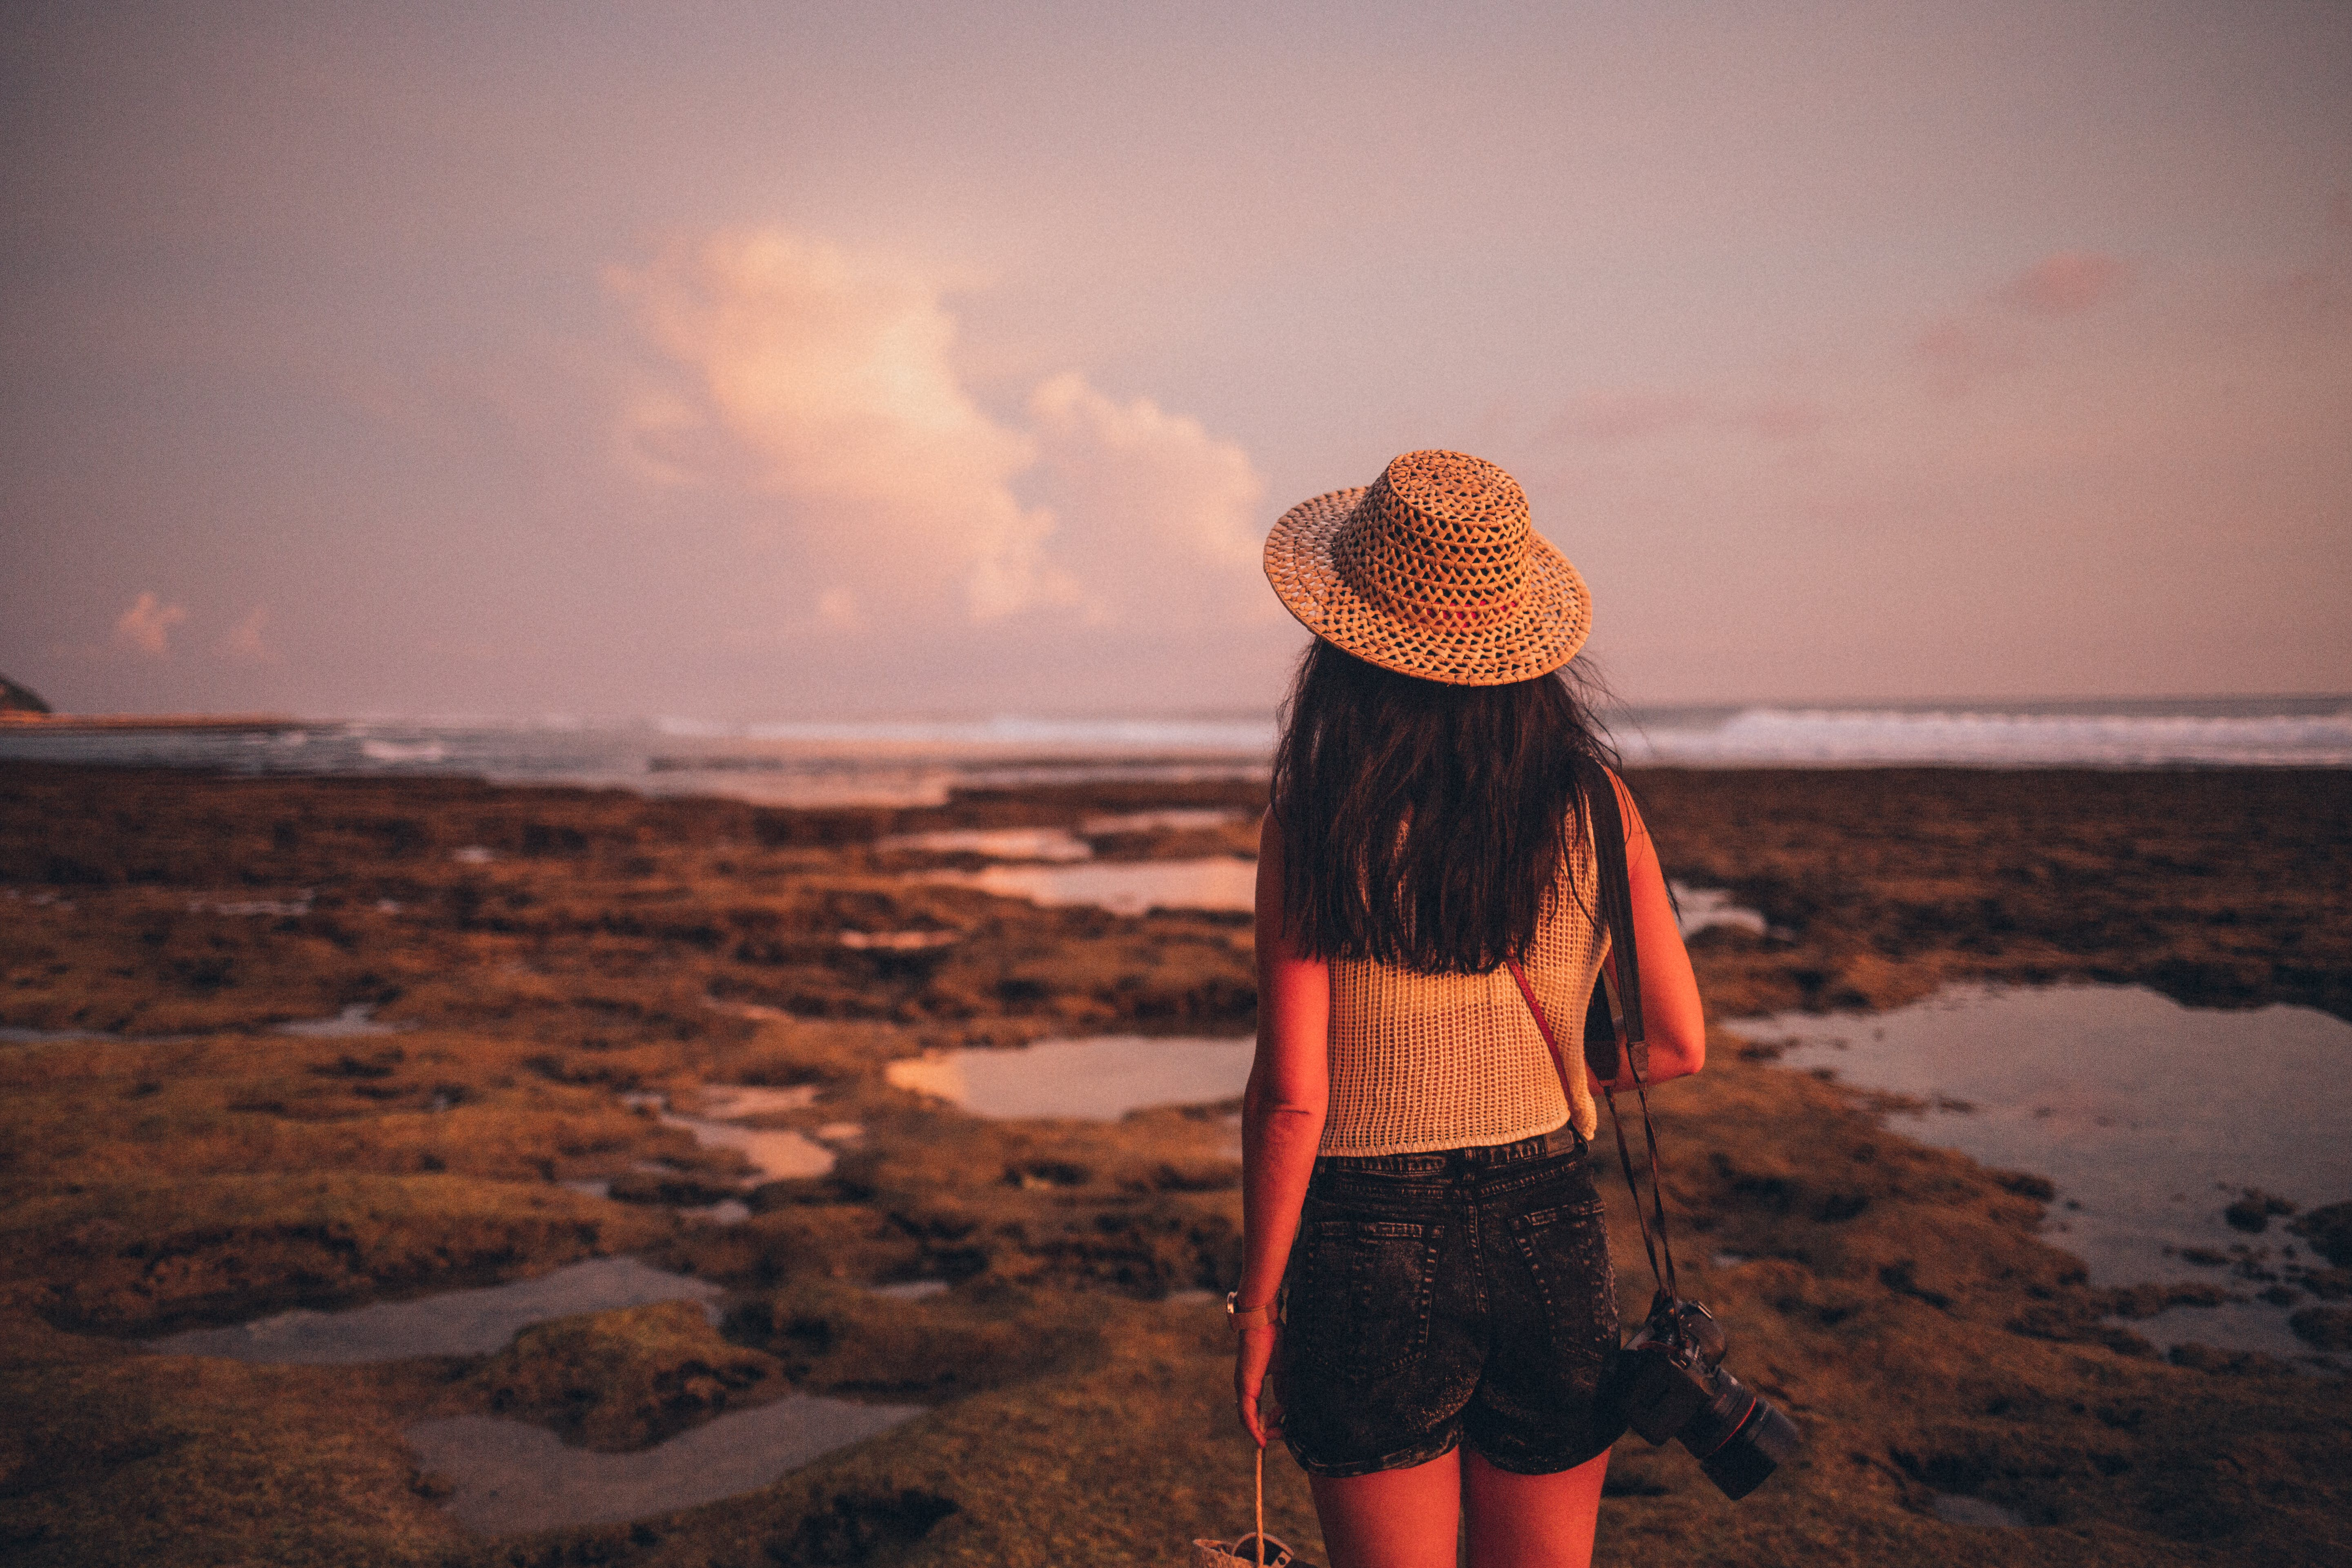 Selective Focus Photography of Woman Standing on Seashore Facing Body of Water